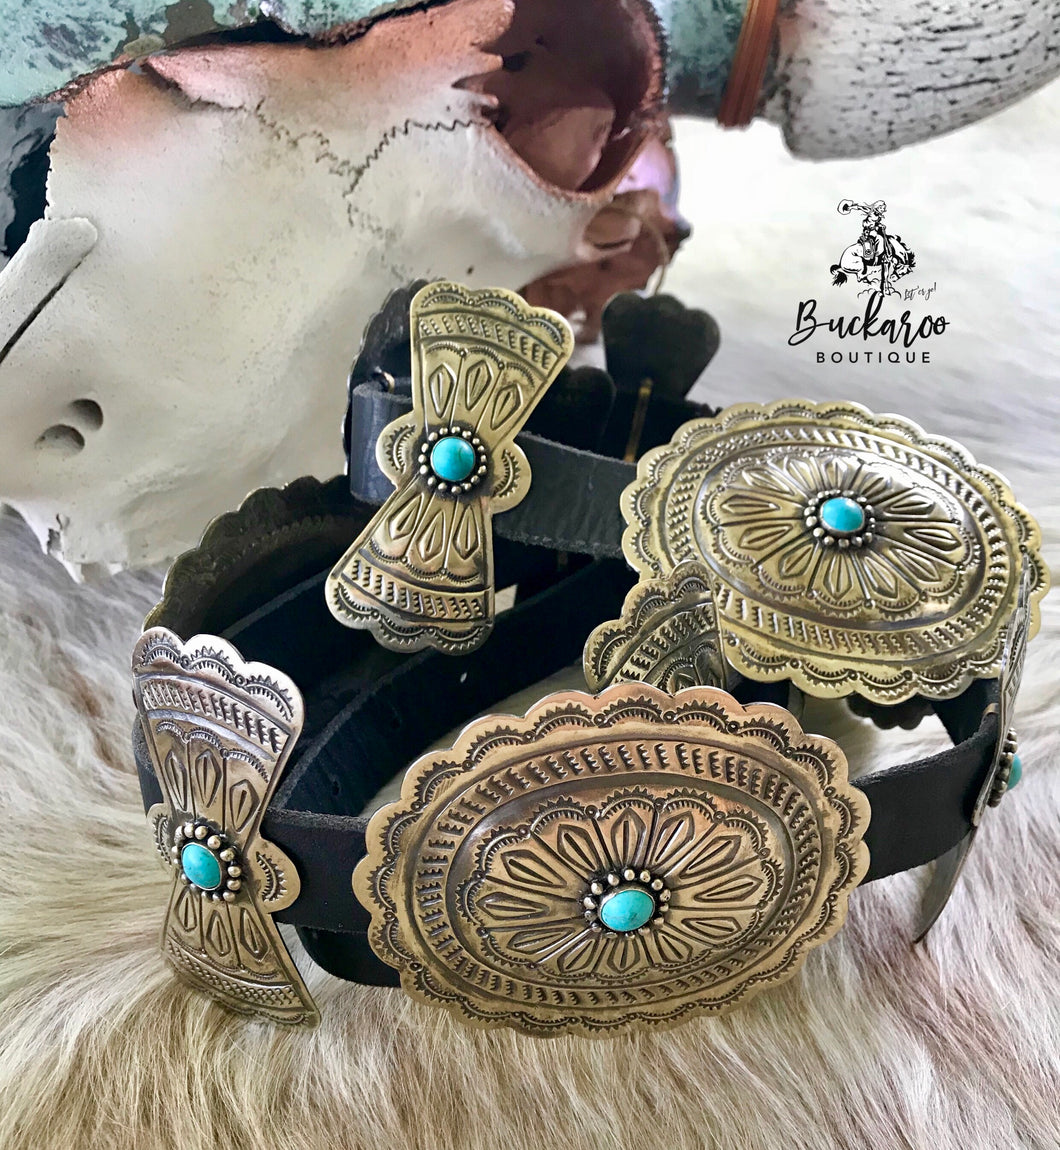 Classic Oval Conchos with Turquoise, Black Leather Belt